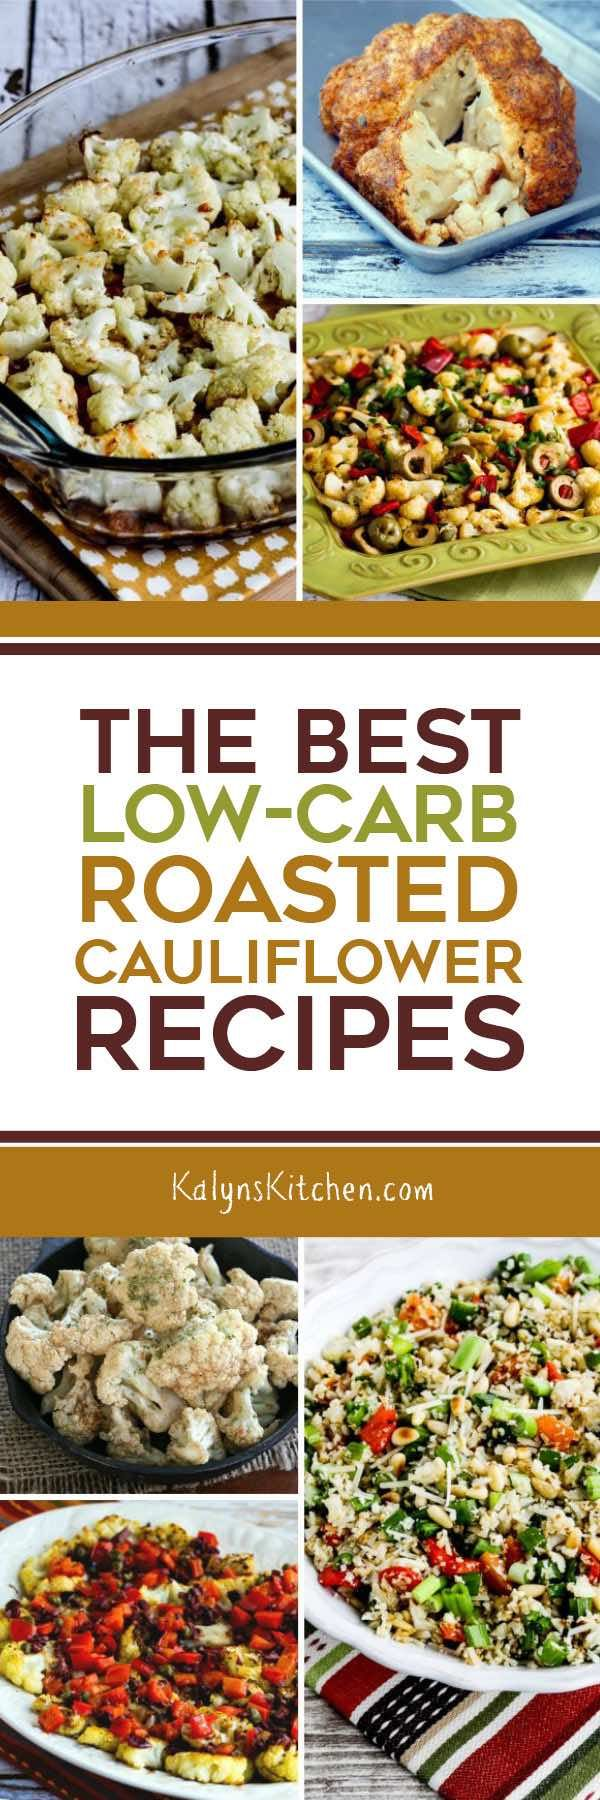 Please don't decide you don't like cauliflower until you try roasted cauliflower because it's amazing. Here are The BEST Low-Carb Roasted Cauliflower Recipes from Kalyn's Kitchen and great blogs around the web! [featured for Low-Carb Recipe Love at KalynsKitchen.com] #LowCarb #Keto #LowCarbRecipes #LowCarbRoastedCauliflower #RoastedCauliflower #LowCarbCauliflowerRecipes